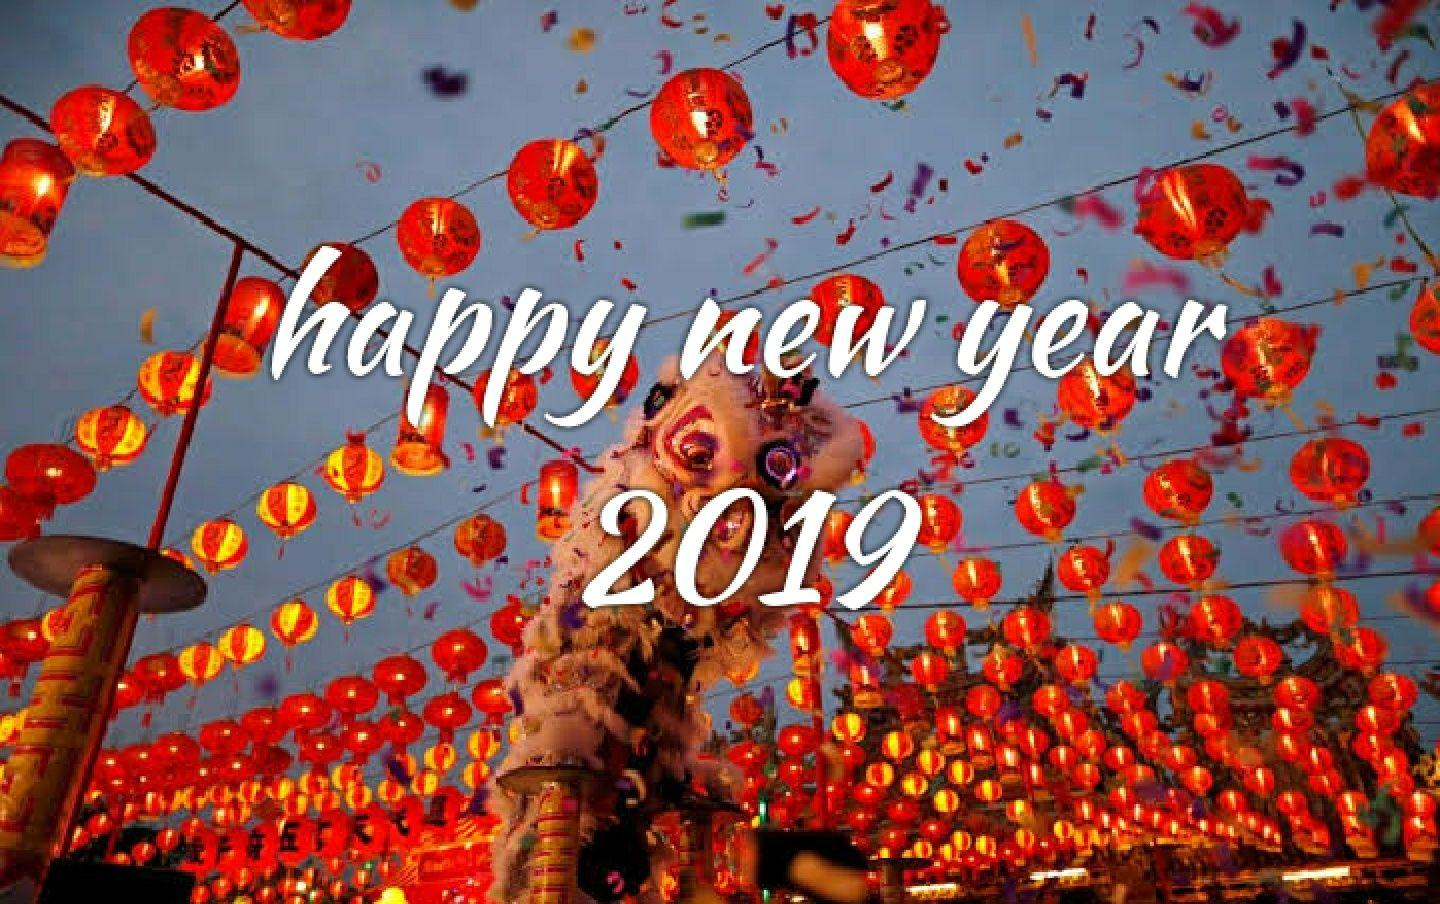 Happy new year image and pictures 2019